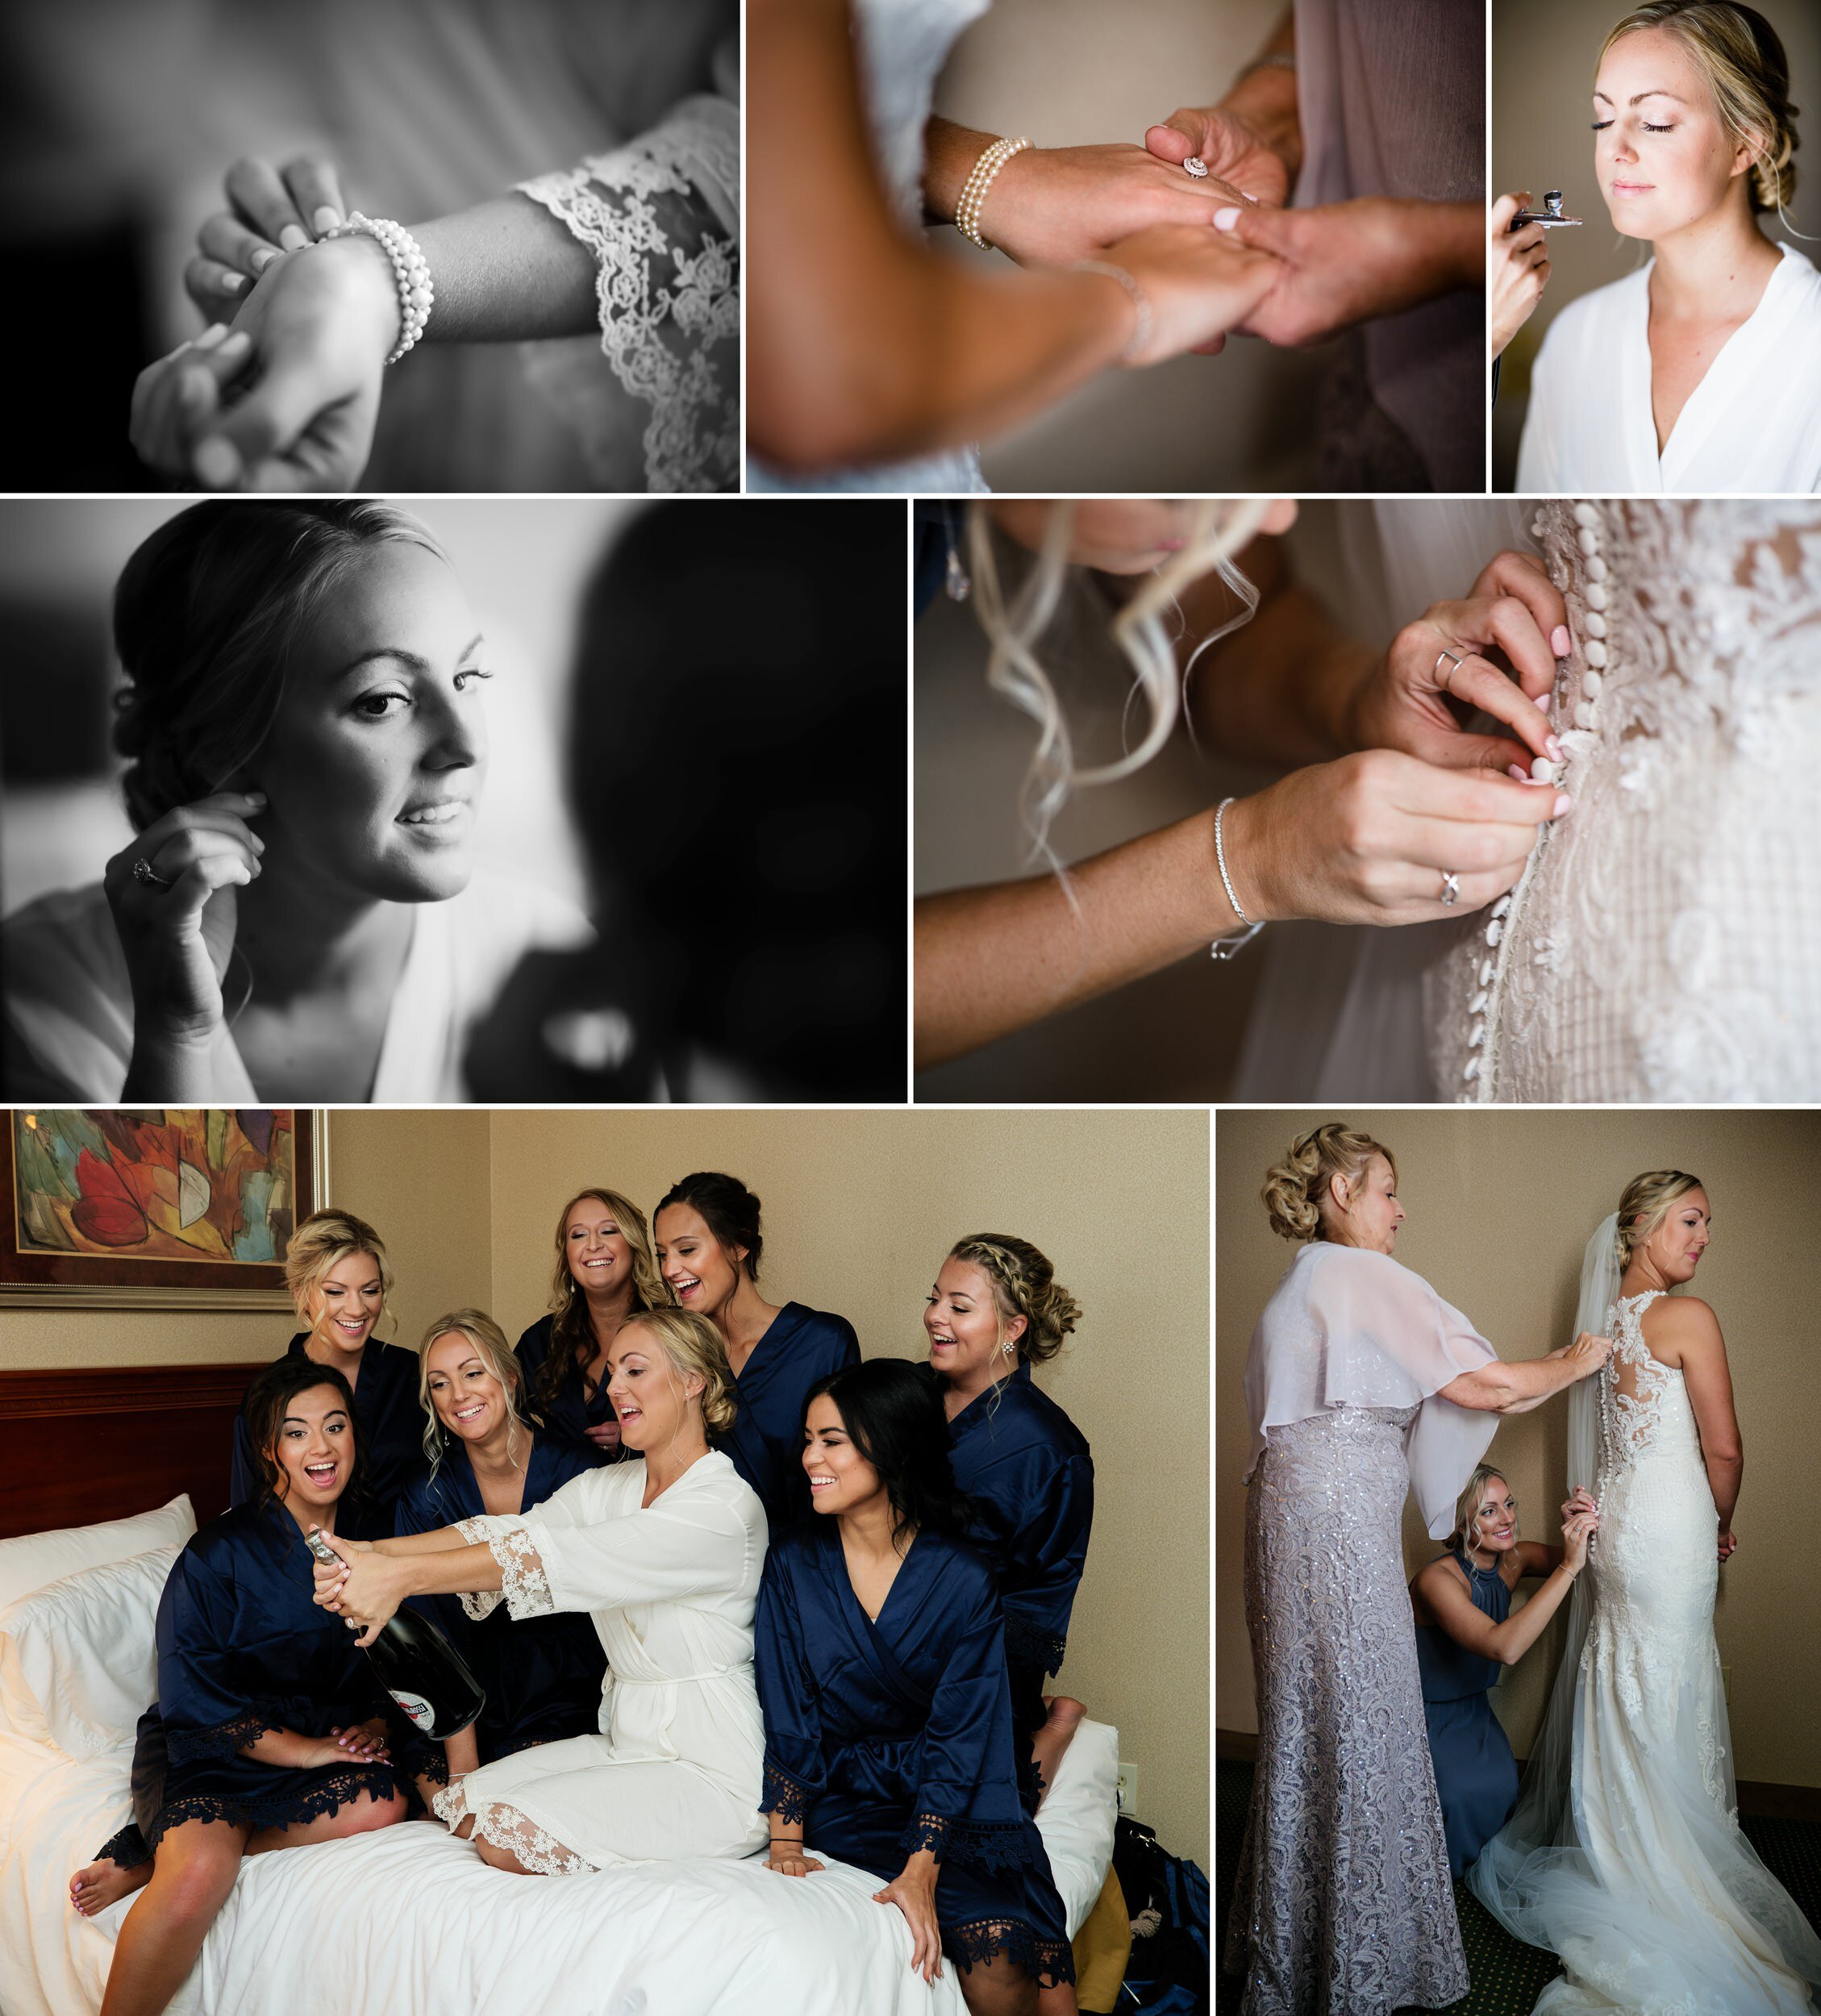 Bridal prep for a wedding at Aberdeen Manor Chapel.